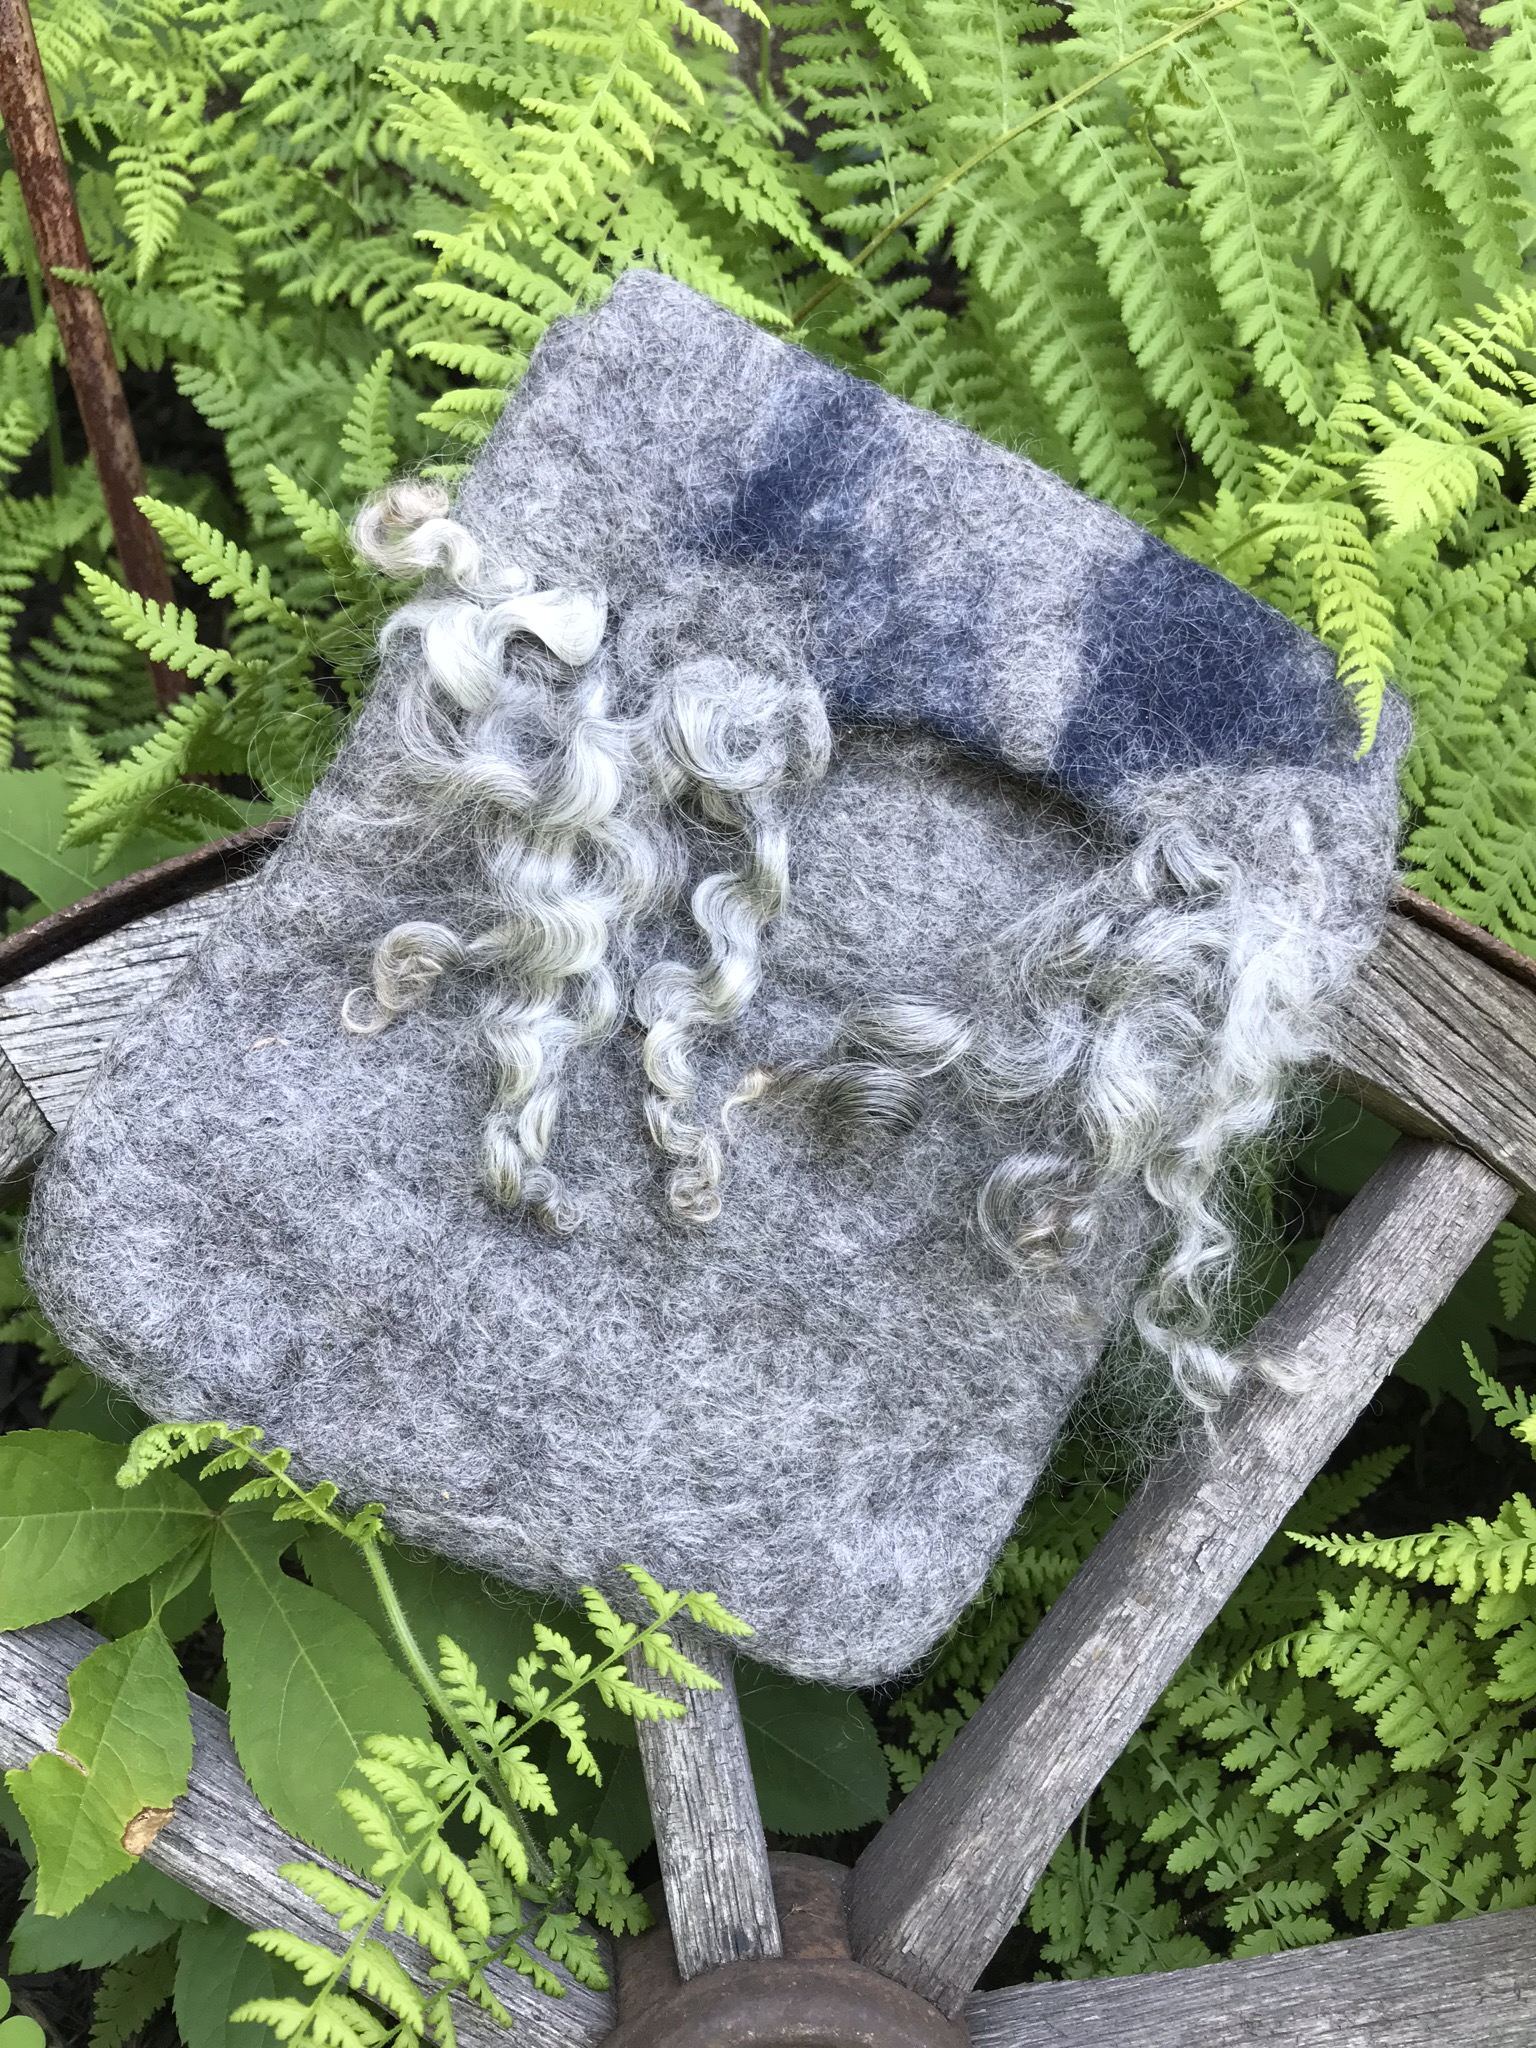 Felted Pouch - Instructors: Donna and Leah PalmerDate: Saturday, Sept., 7, 1:00-4:00 (Half Day)Cost: $50Maximum spots: 6No experience necessary.